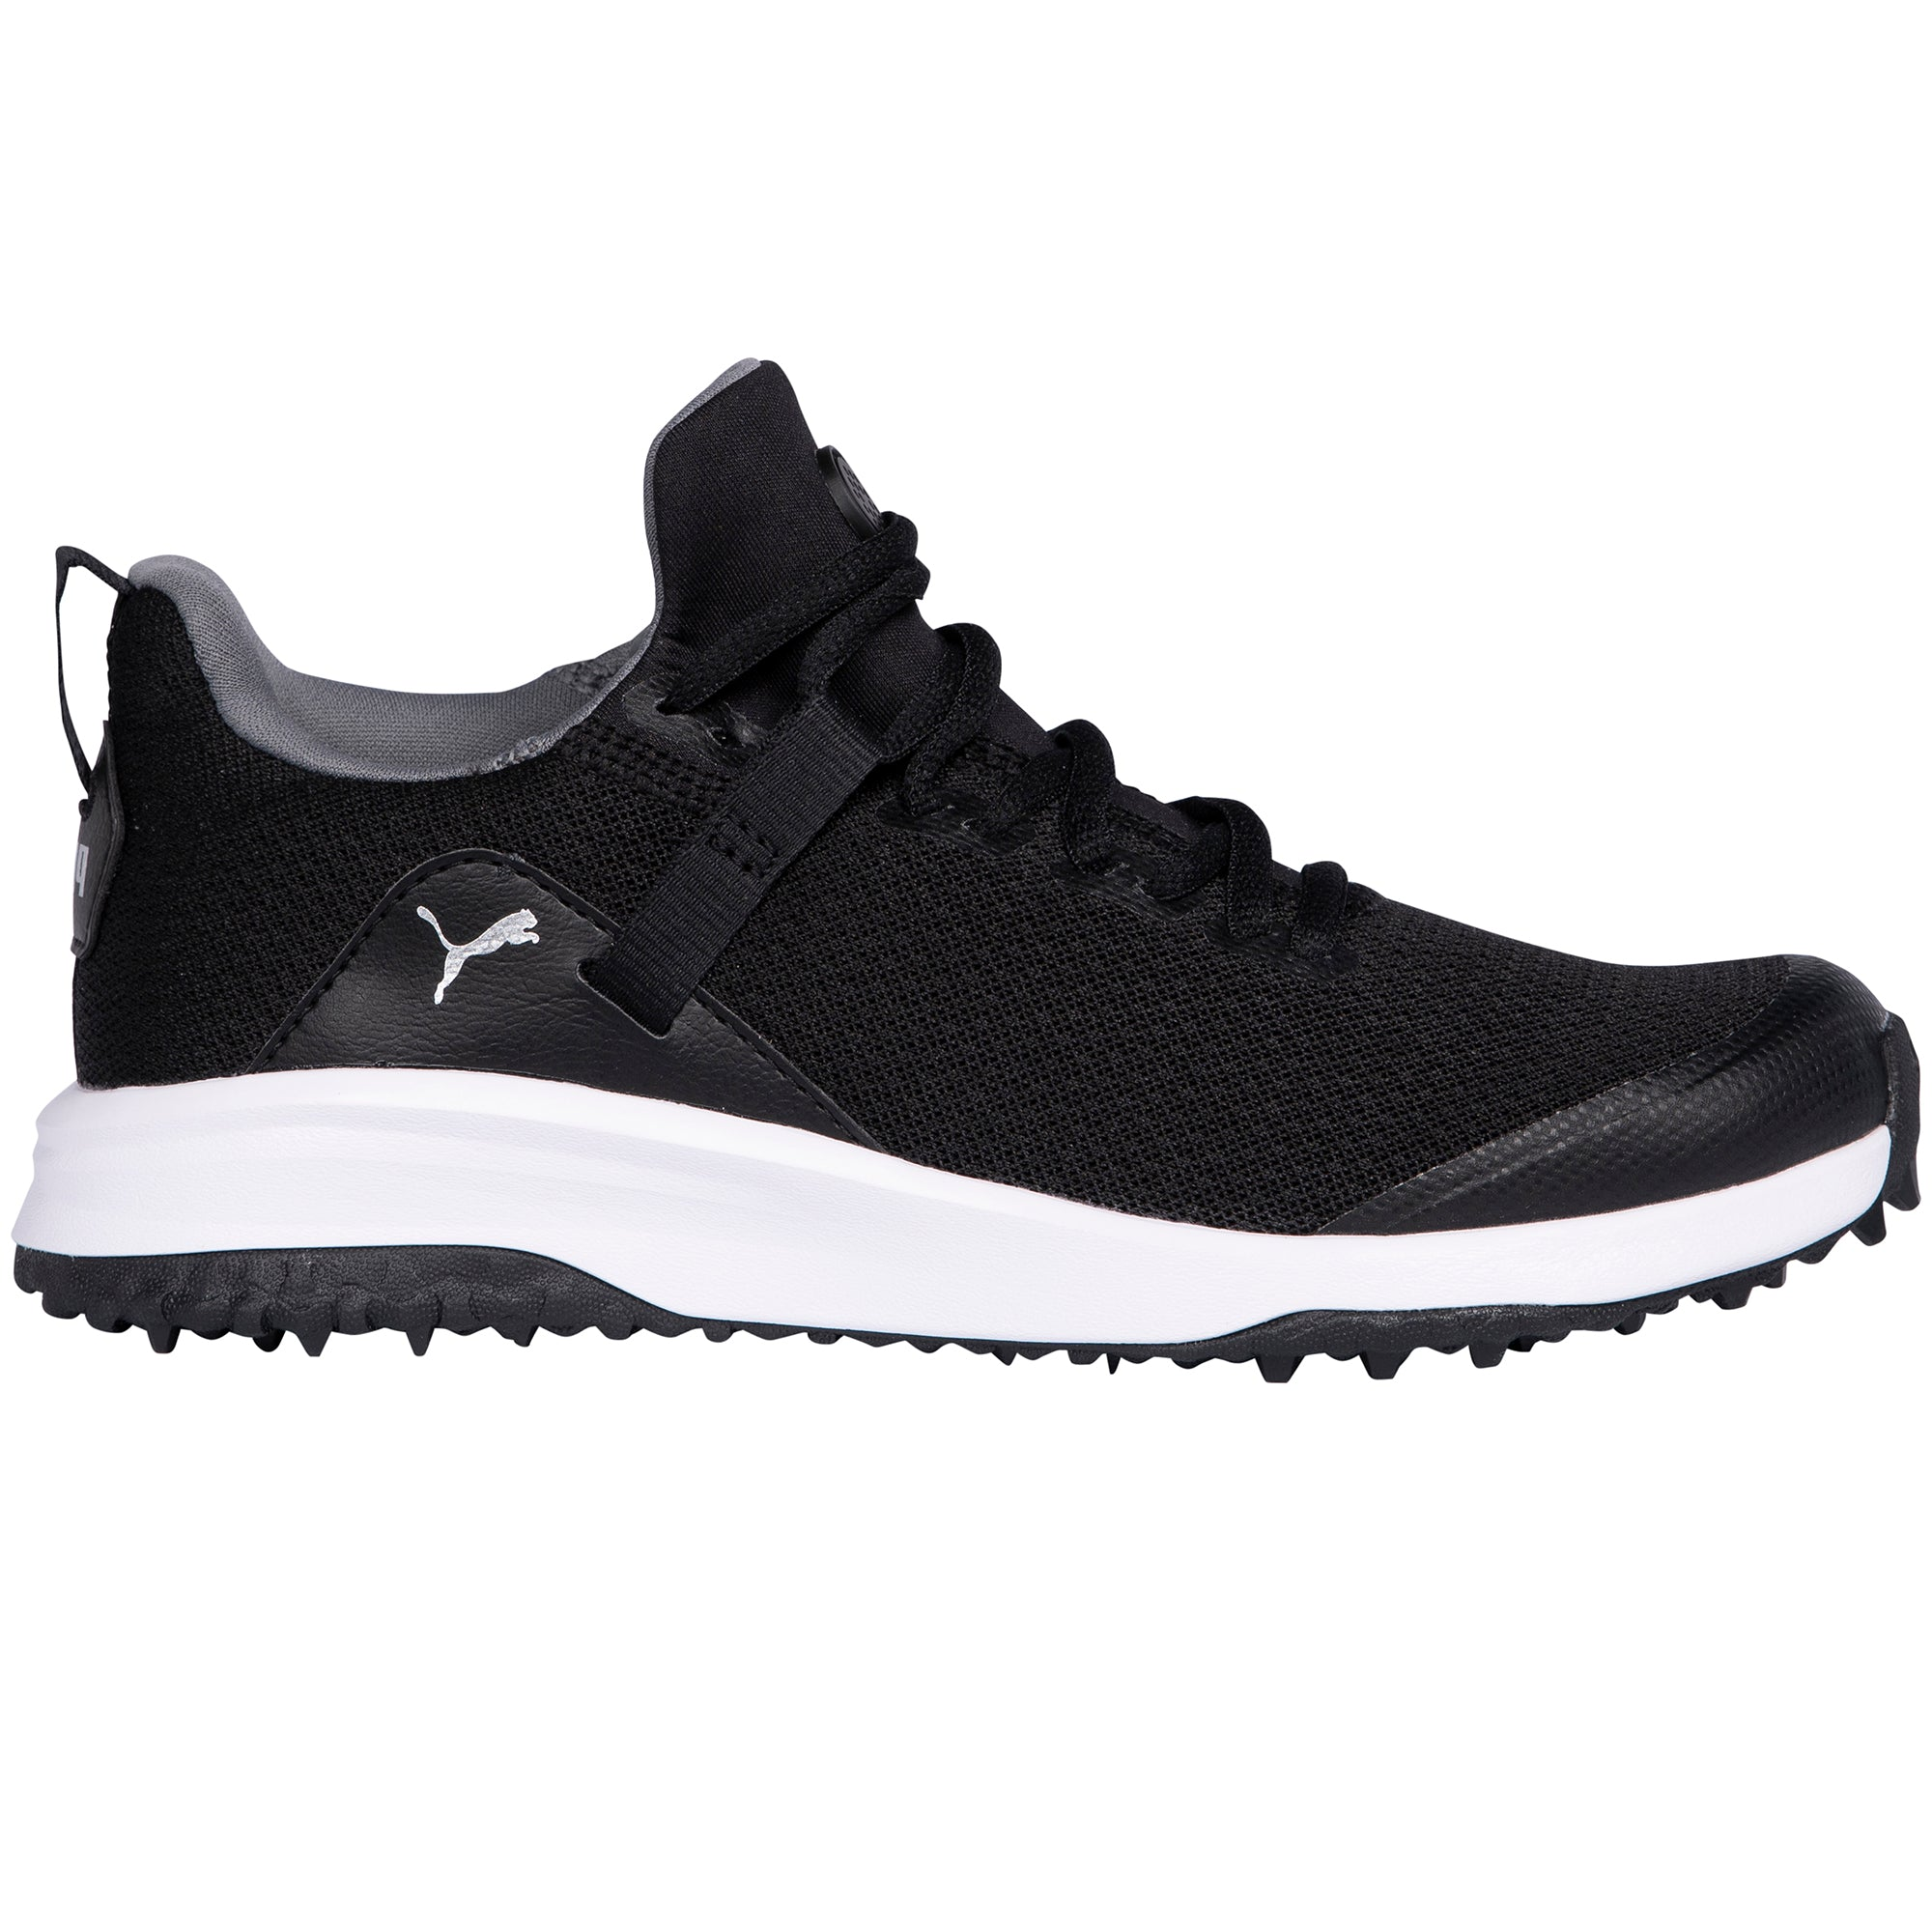 Puma Fusion Evo Golf Shoes